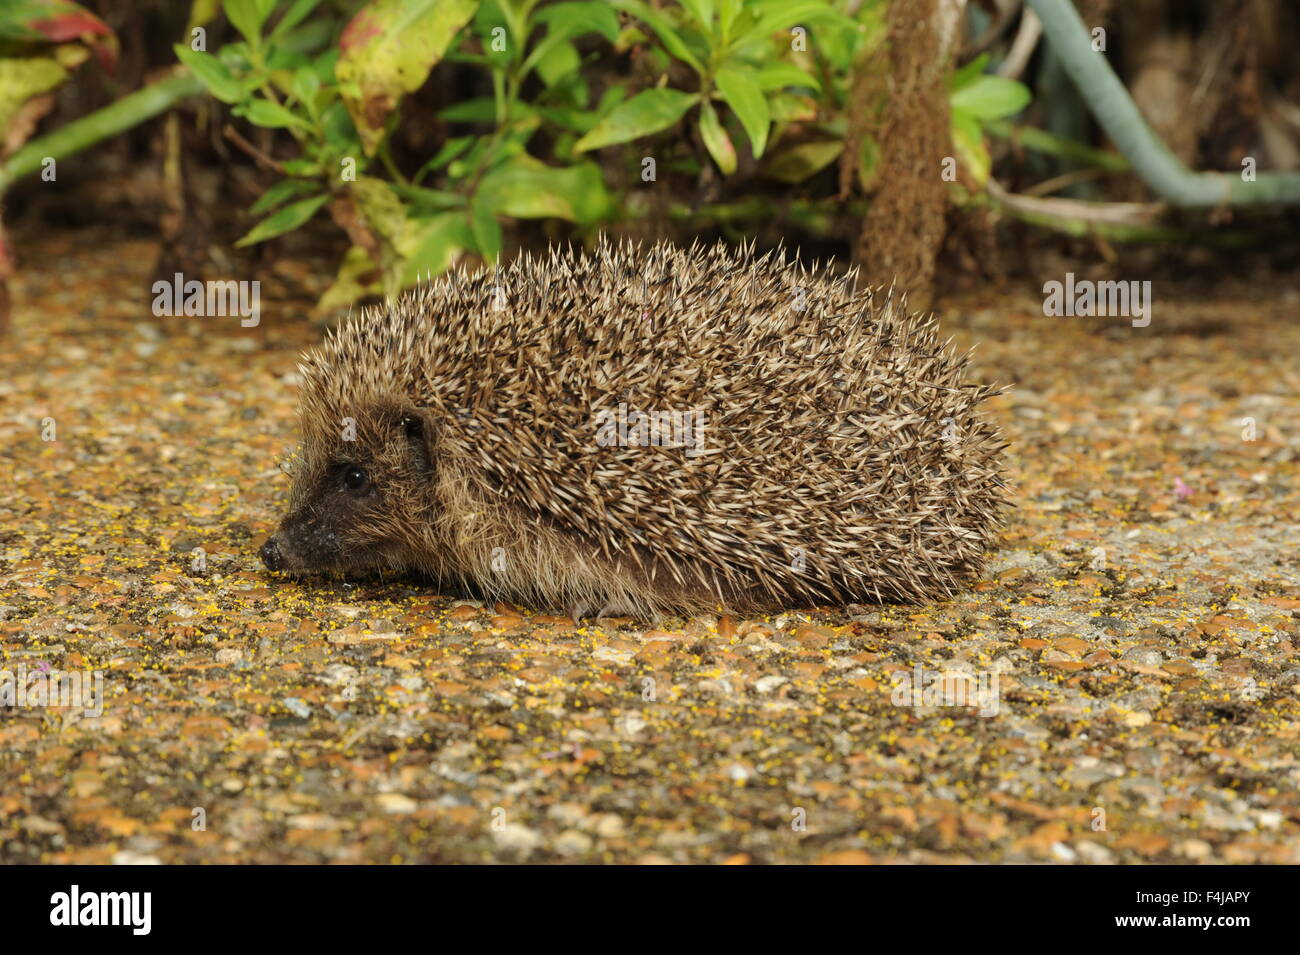 Photograph of a hedgehog on a path - Stock Image